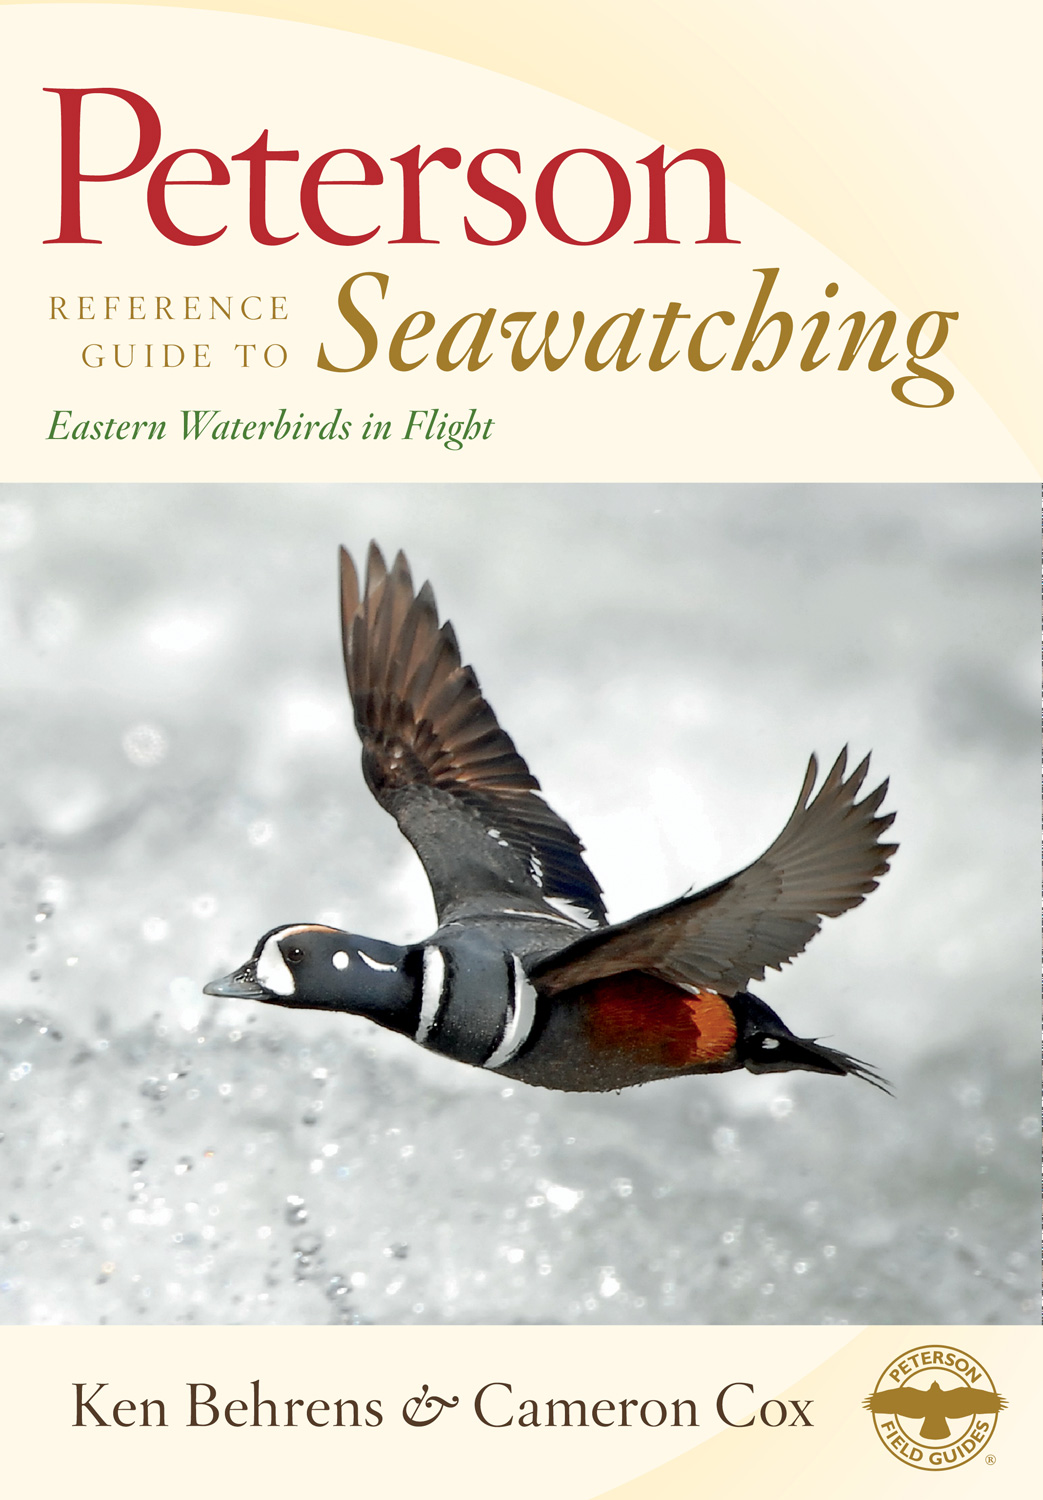 Peterson Reference Guide to Seawatching-9780547237398